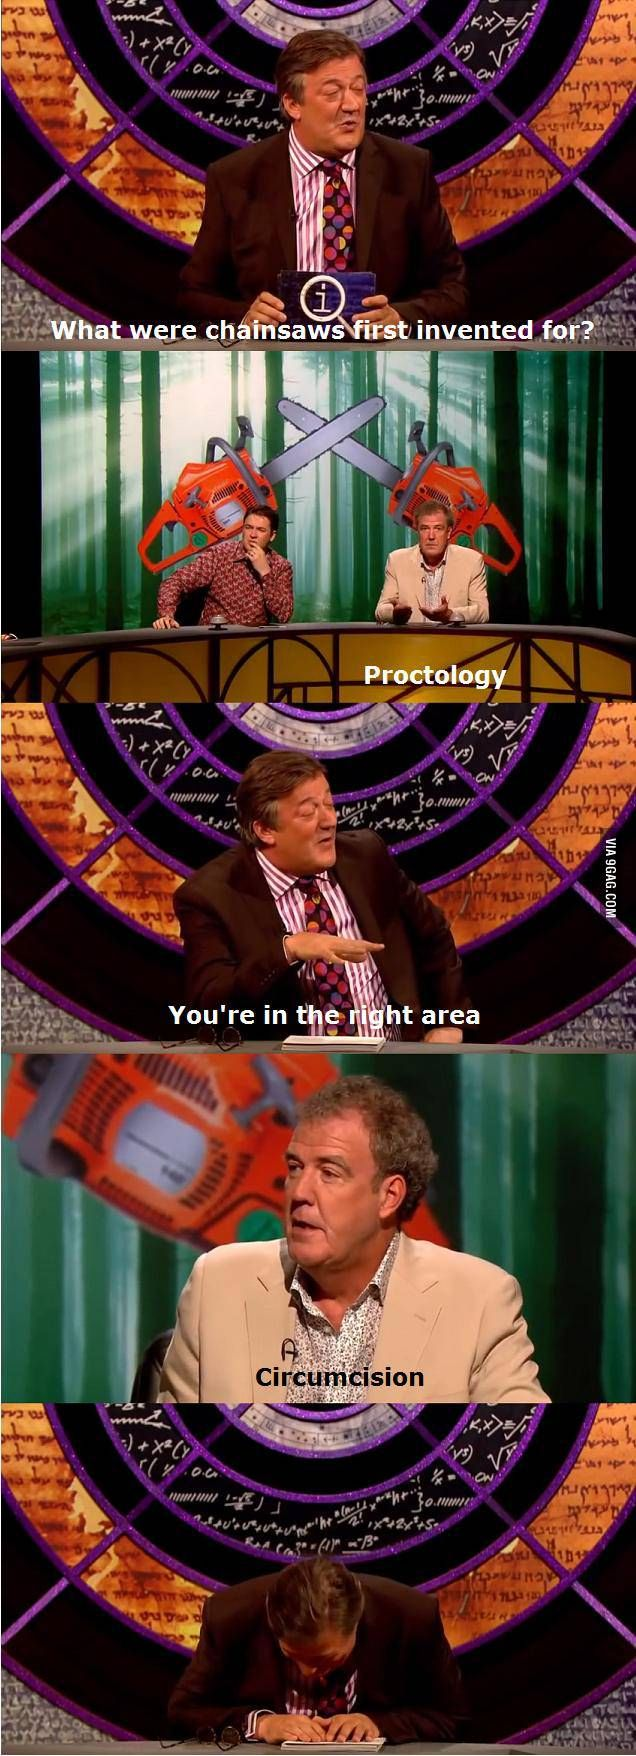 Jeremy Clarkson on chainsaws